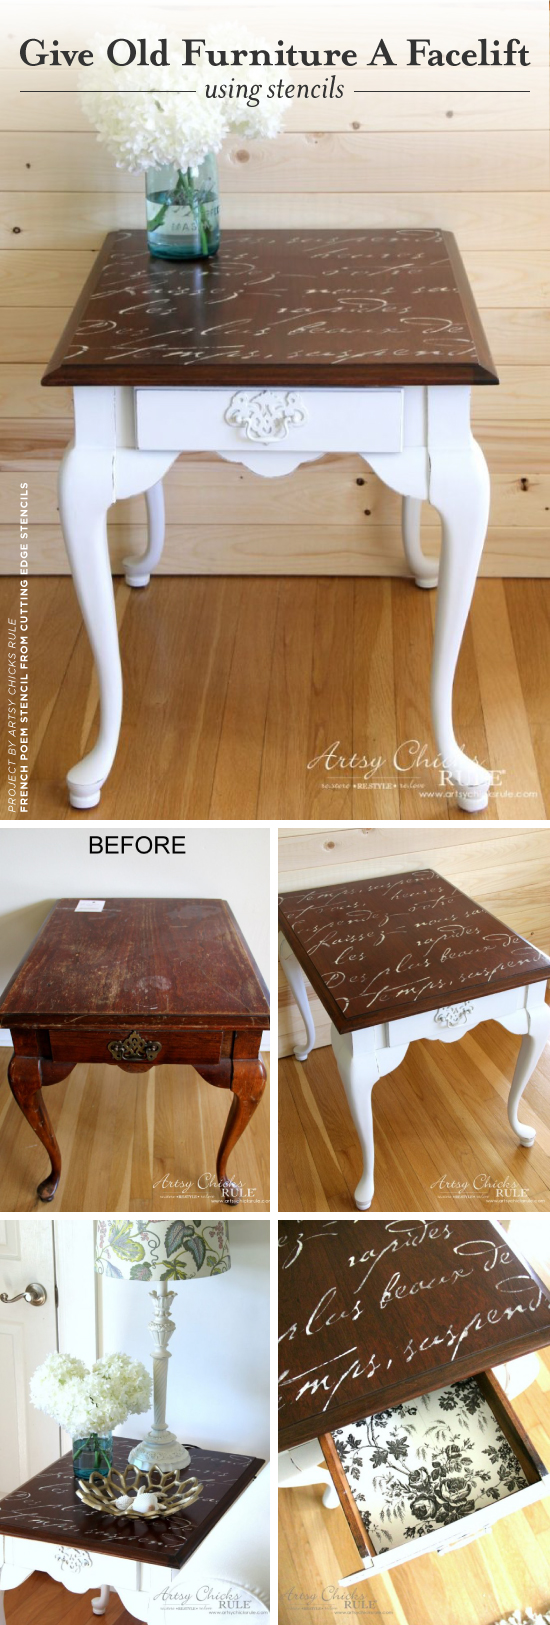 Cutting Edge Stencils shares a furniture tutorial for a DIY table makeover using the French Poem Stencil. http://www.cuttingedgestencils.com/french-poem-diy-craft-stencil-design.html